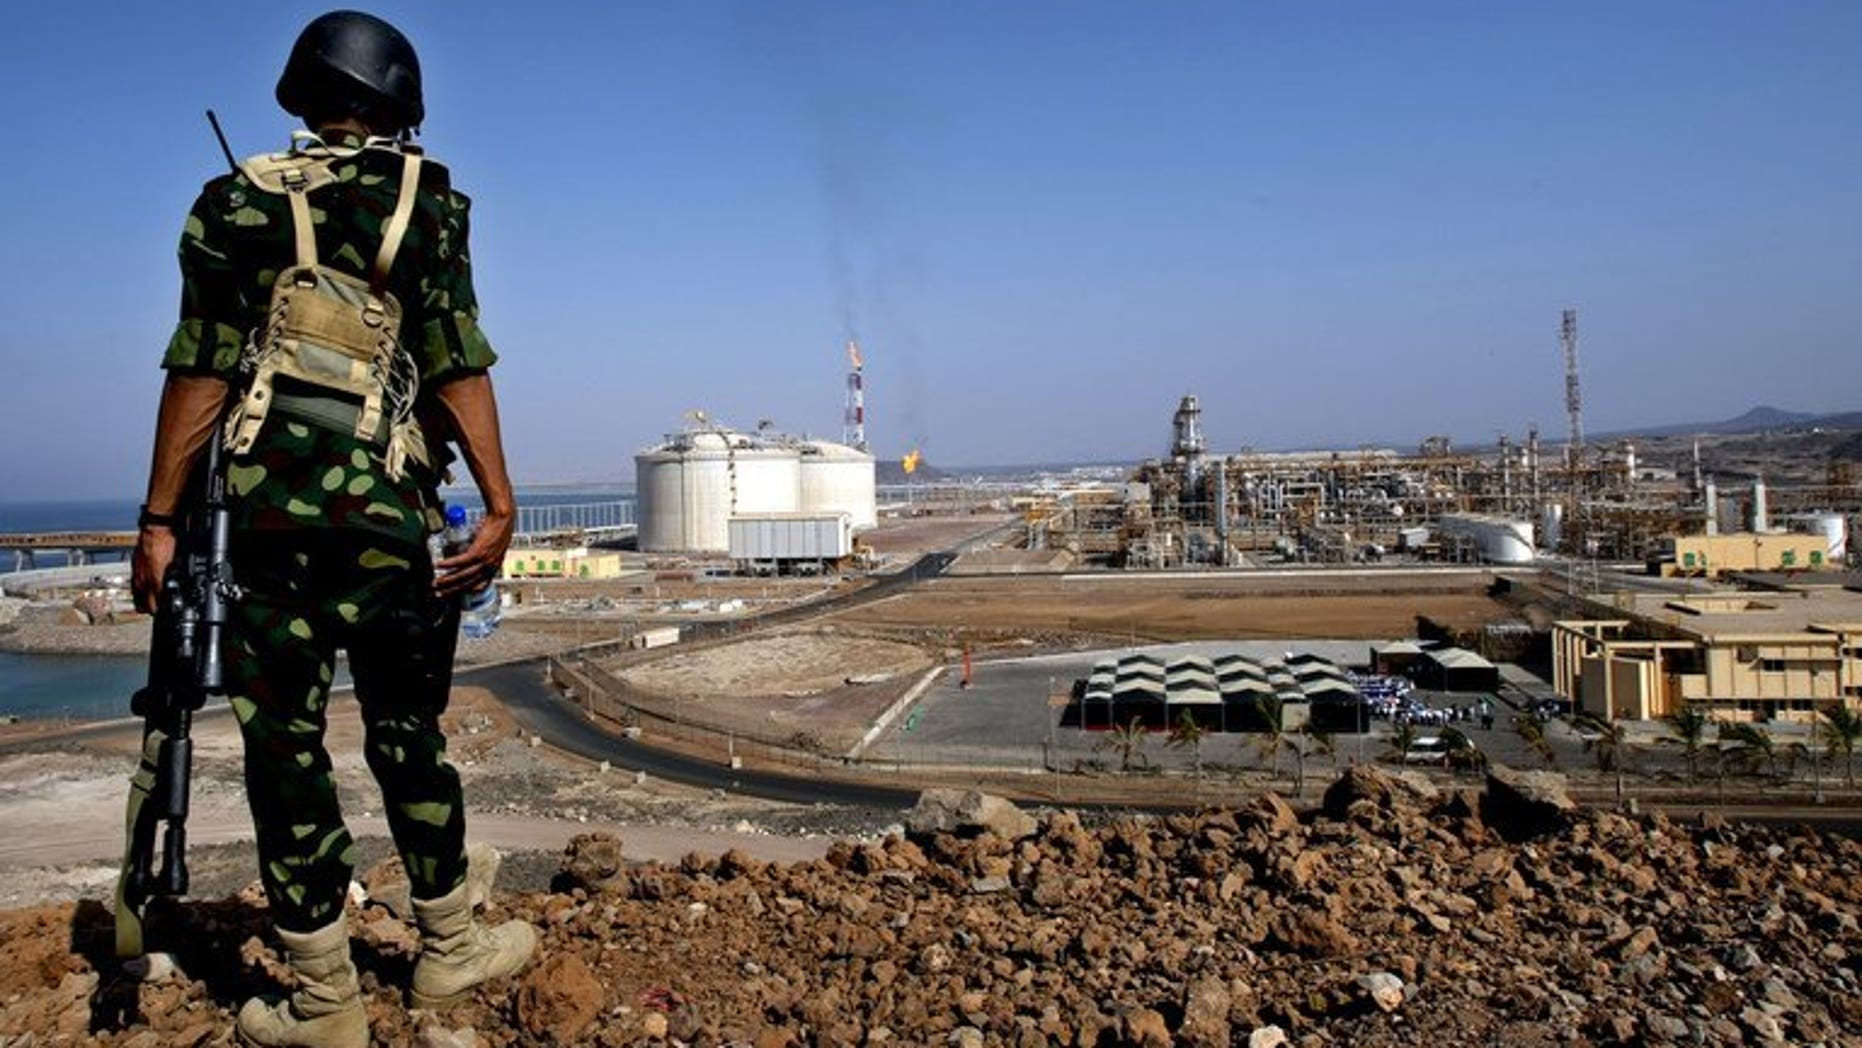 A Yemeni soldier stands guard near a gas plant in Balhaf, on November 7, 2009. Yemeni authorities have sent more soldiers to the coastal town of Balhaf, a day after an alleged Al-Qaeda plot to attack a key gas terminal was foiled, a security official tells AFP.